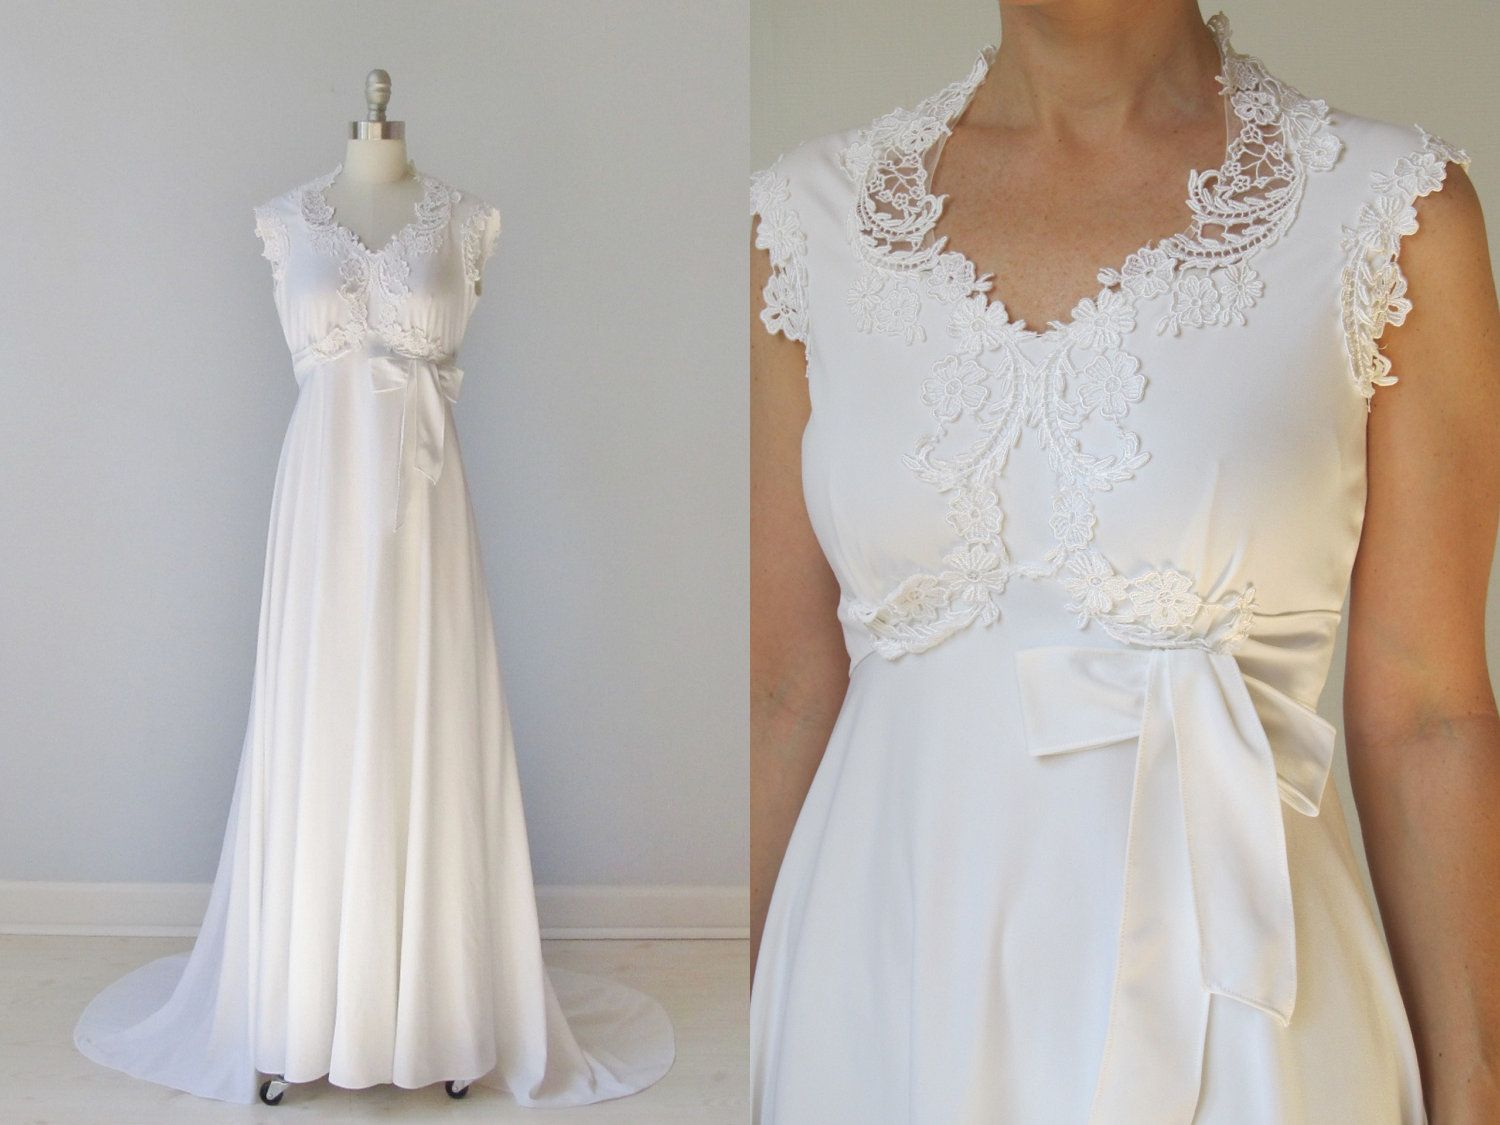 Make Your Own Wedding Dress Plus Size Dresses For Guest Check More At Http